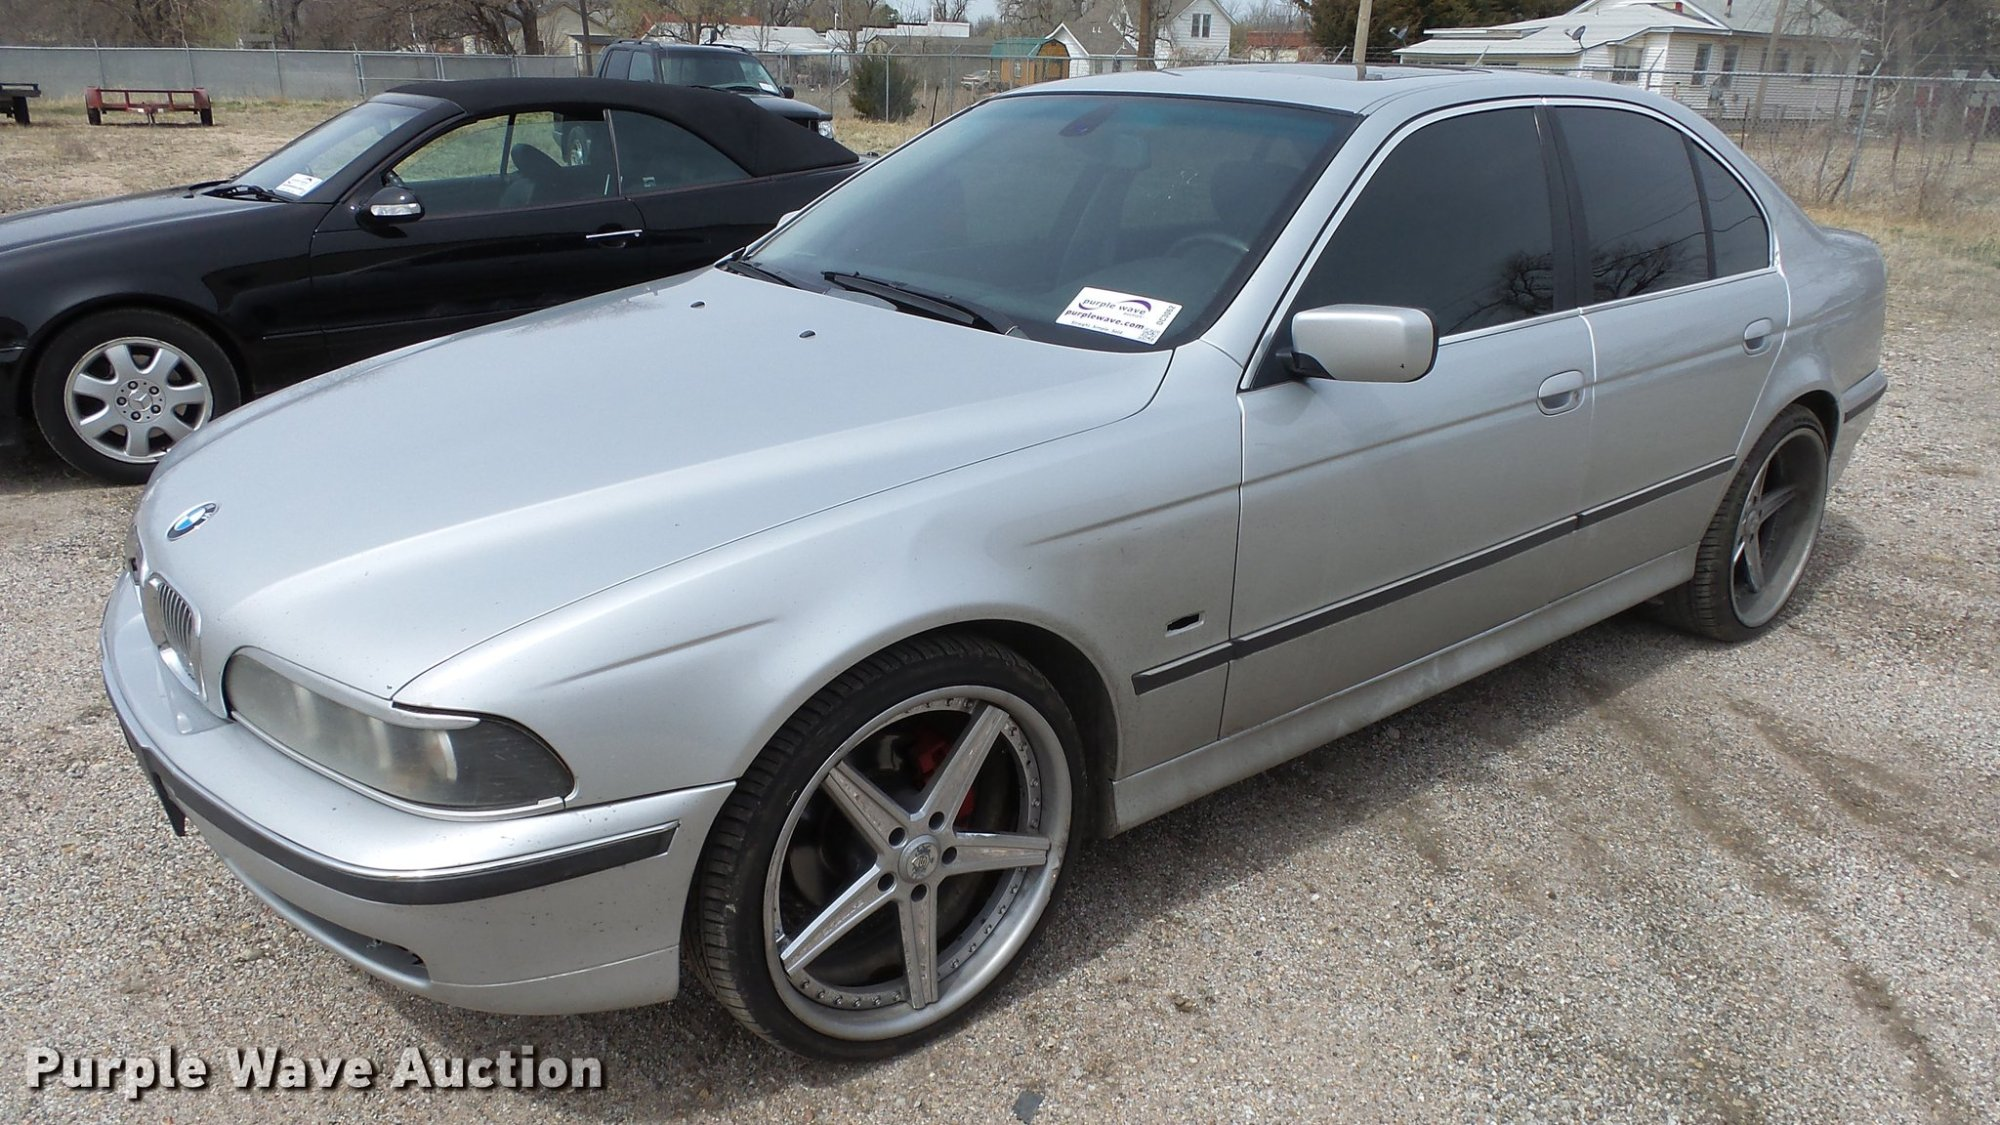 hight resolution of dc3062 image for item dc3062 2000 bmw 528i